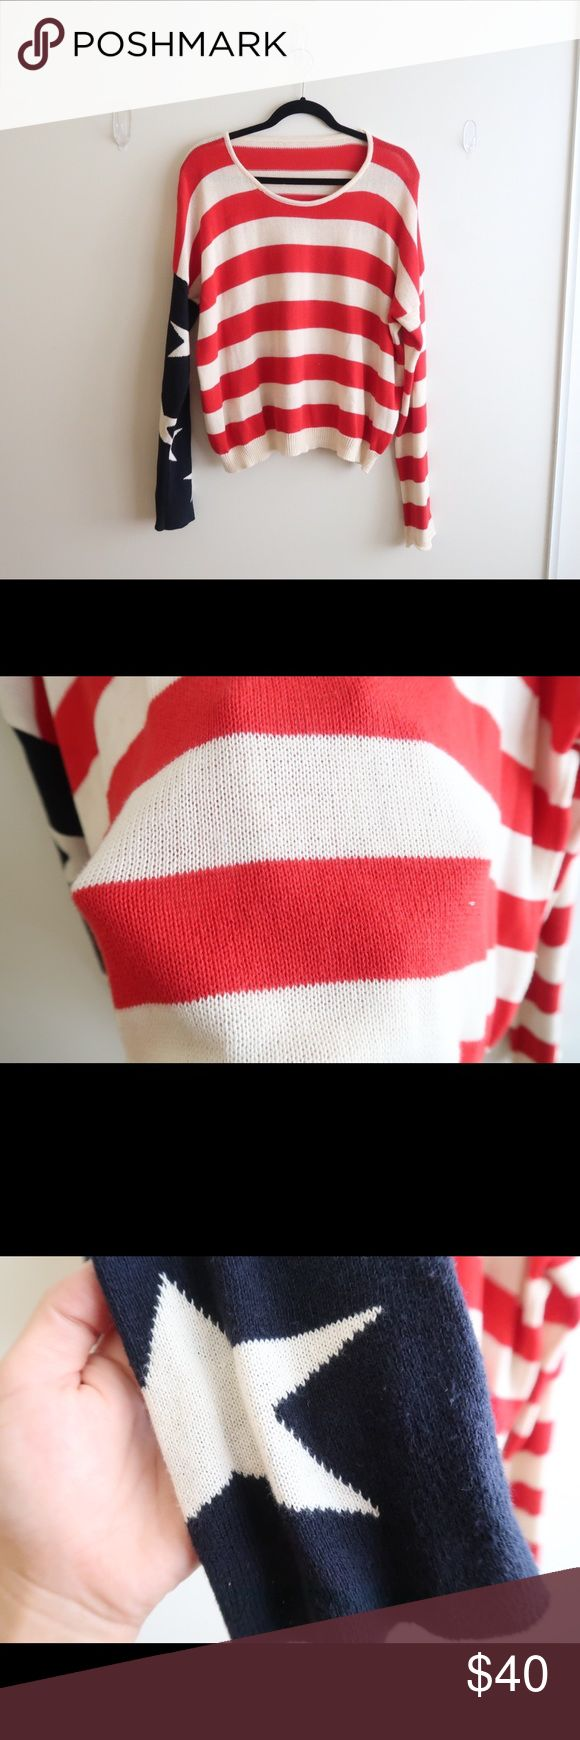 BM Cassidy American Flag Sweater Purchased from Brandy Melville (online). 100% Cotton. Worn a couple times. No visible flaws. [B1] Brandy Melville Sweaters Crew & Scoop Necks